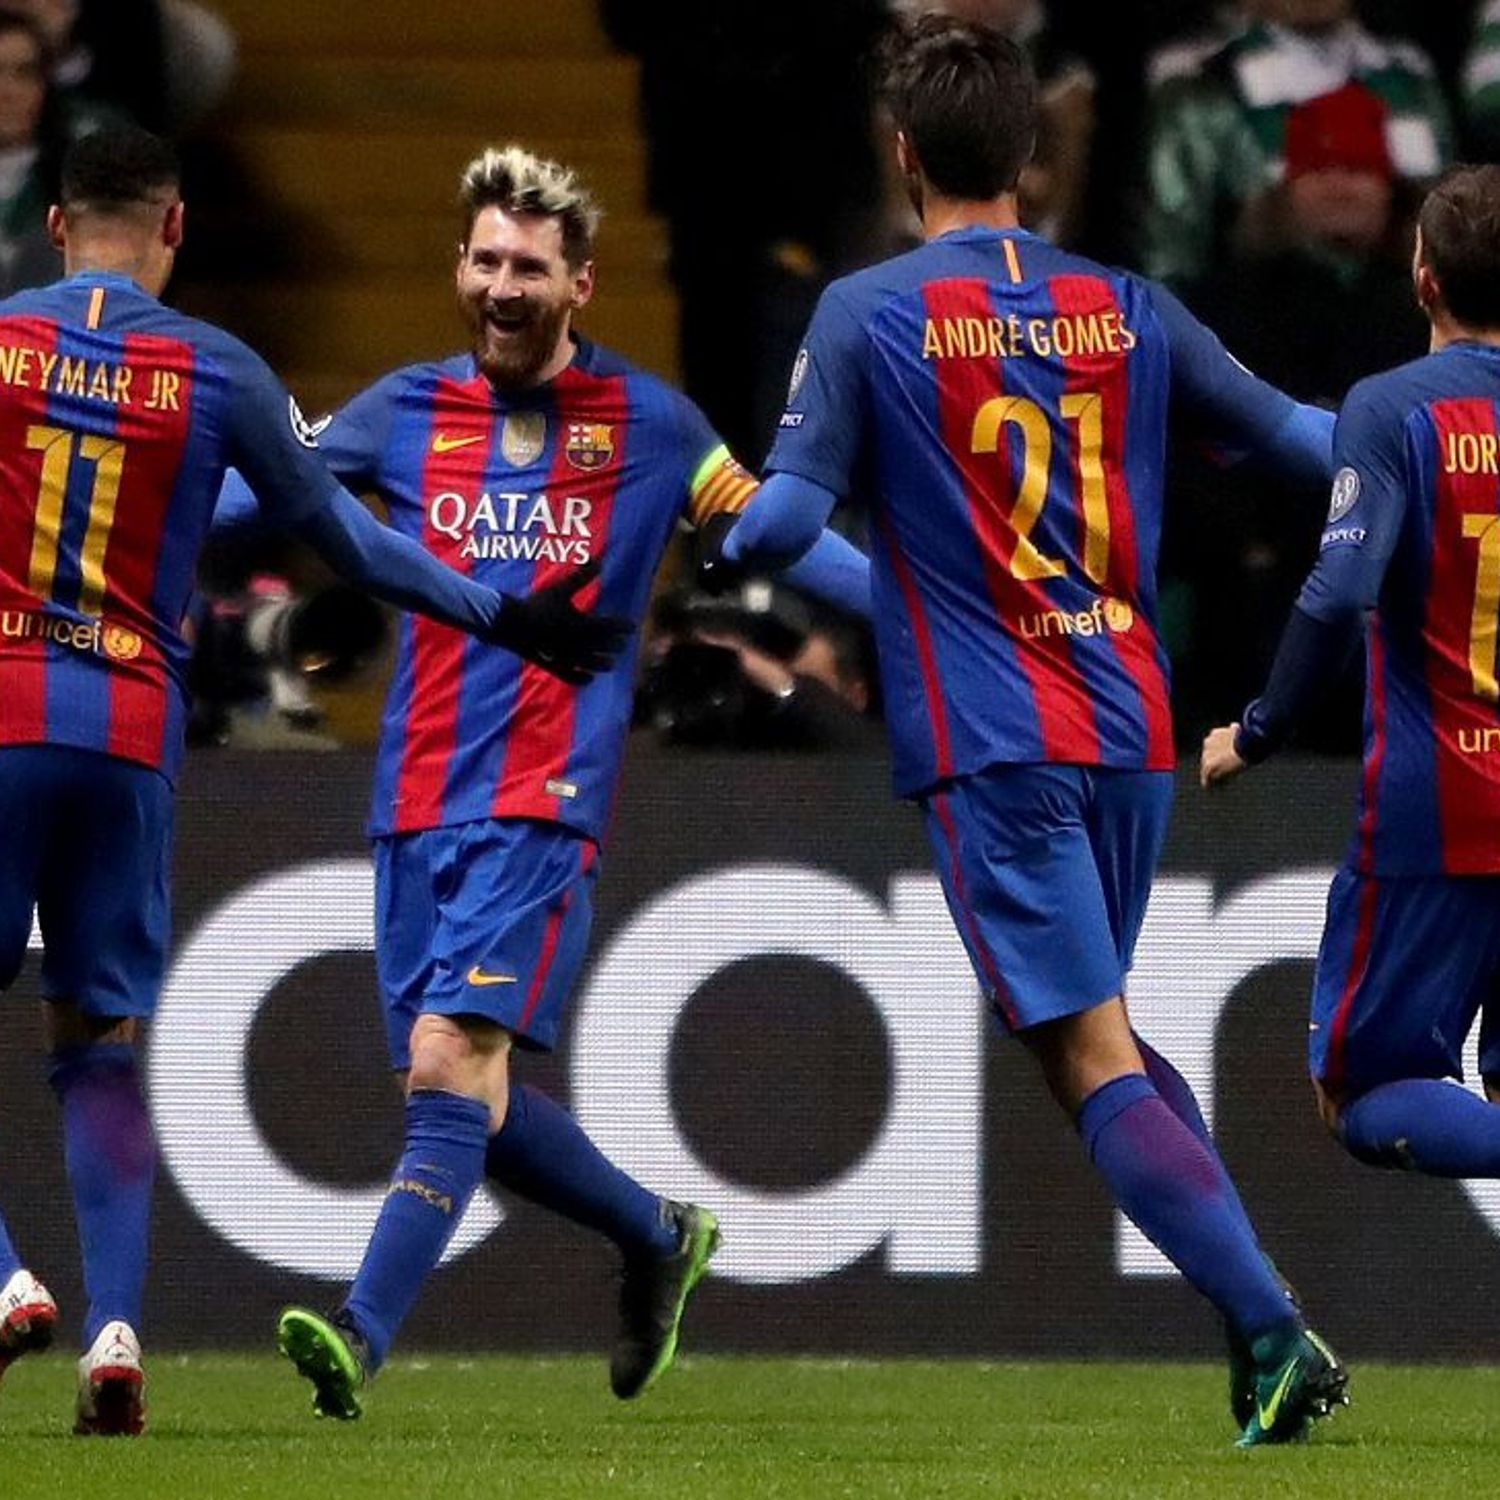 Liverpool V Barcelona Live Matchday Blog: Lionel Messi Brace Boosts Barcelona Into Round Of 16 With